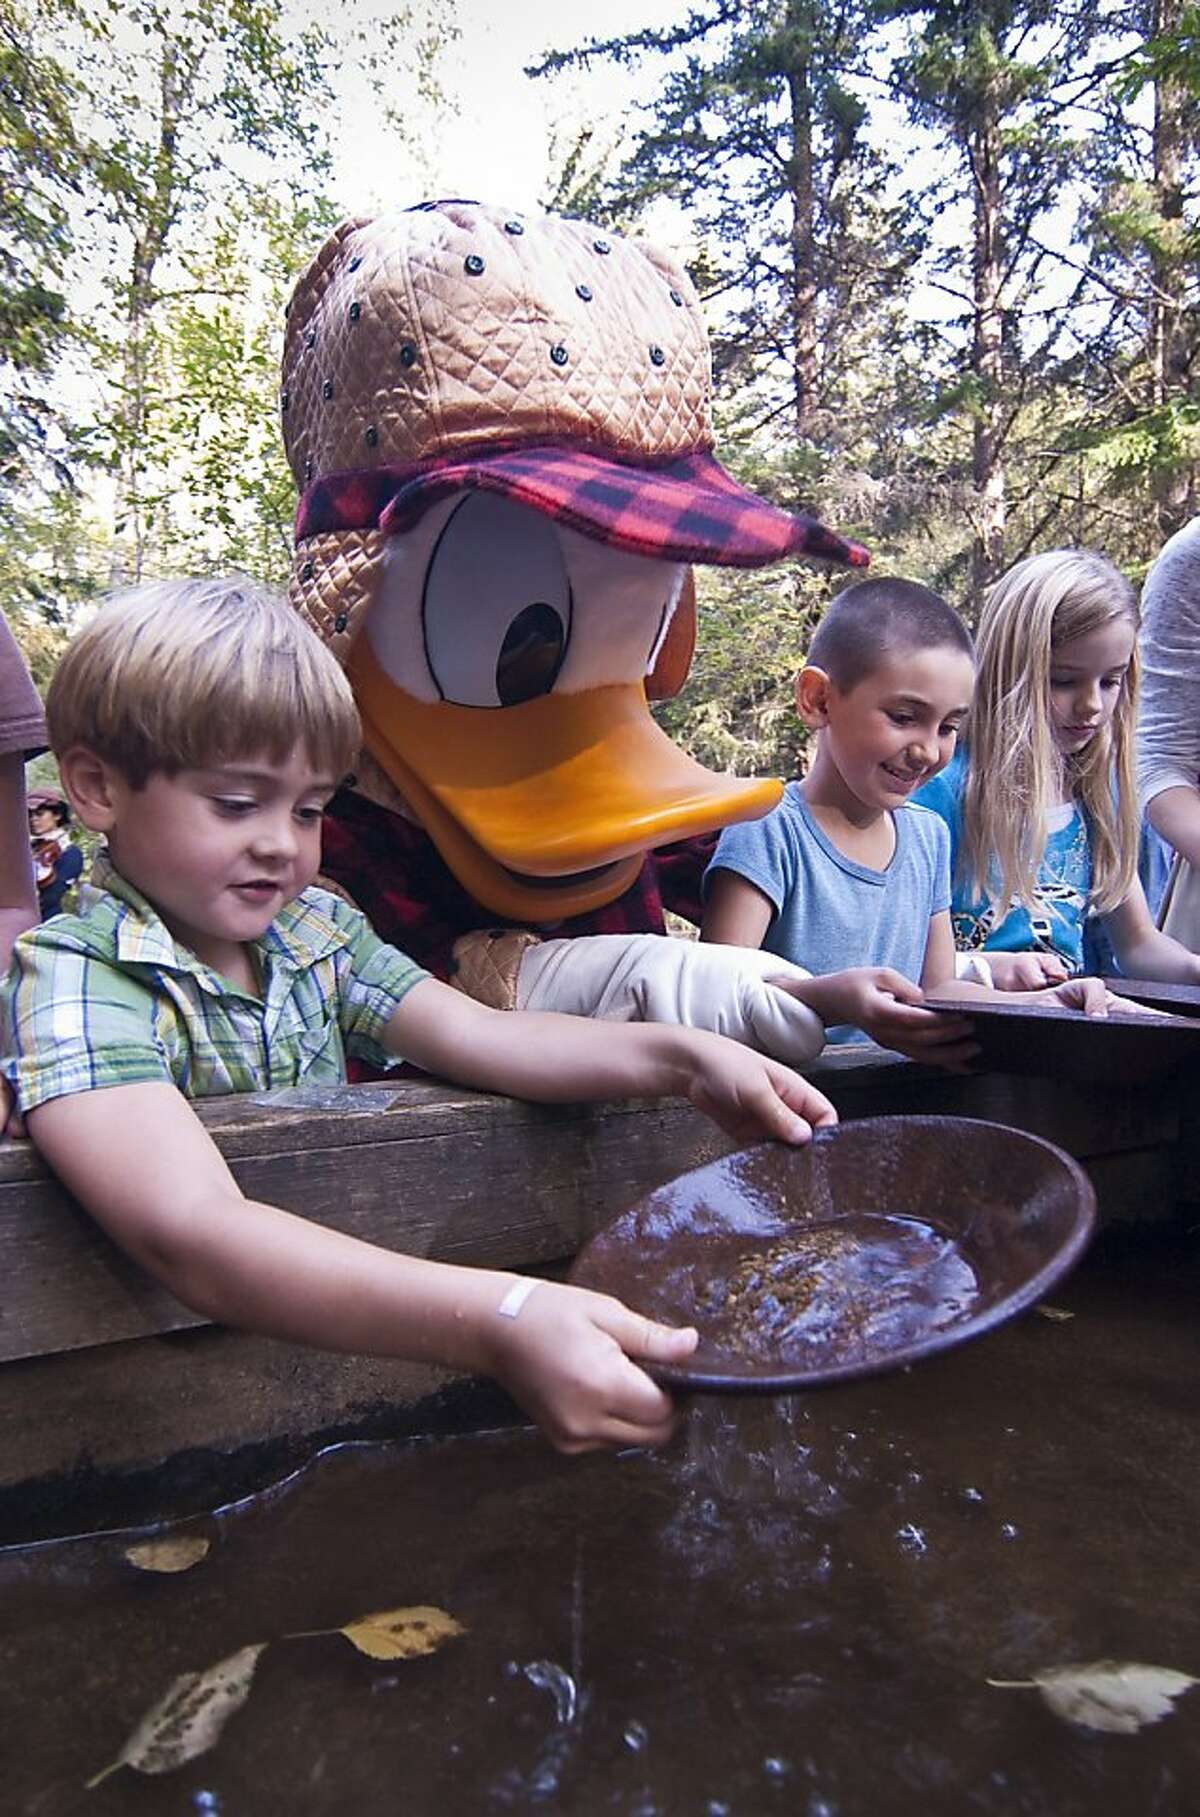 Located at the edge of Skagway, Alaska, the Liarsville Gold Rush Trail Camp is a gentle recreation of the gold rush era; when guests of the Disney Wonder cruise ship visit, a cast of other characters is present.